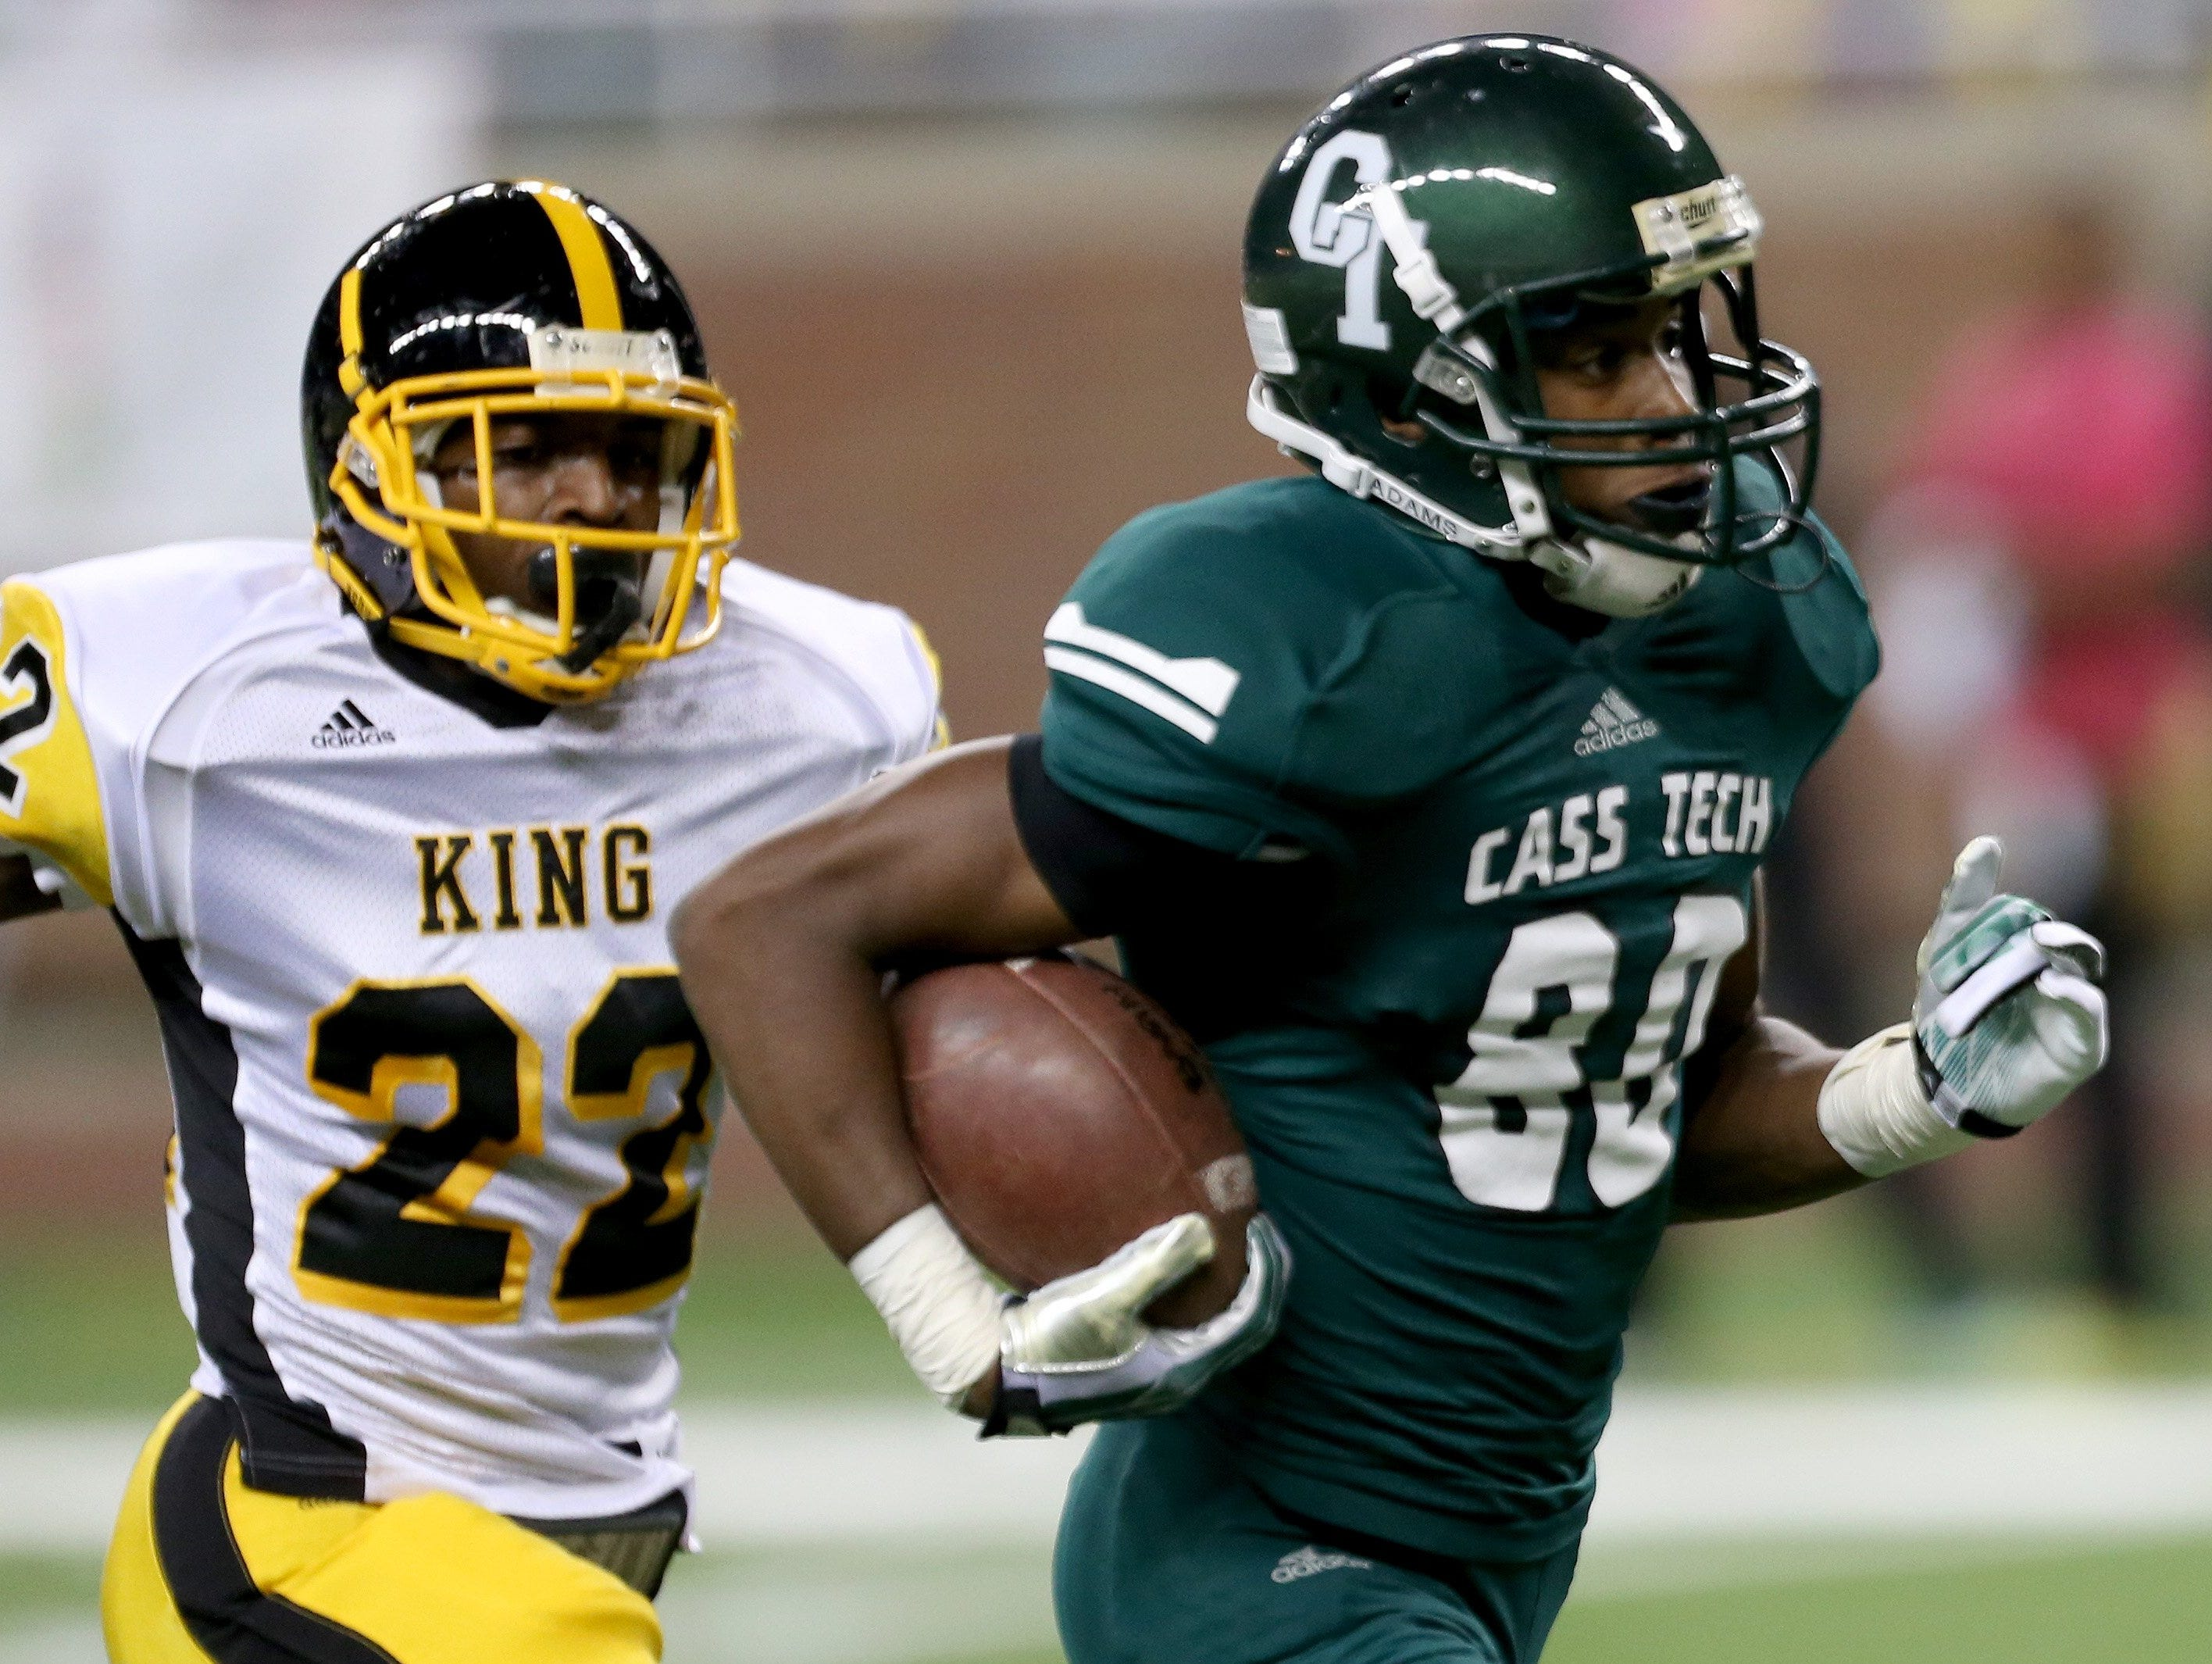 Donovan Peoples-Jones runs by Detroit King's Jalen Embry for a TD in a 2013 game at Ford Field in Detroit.